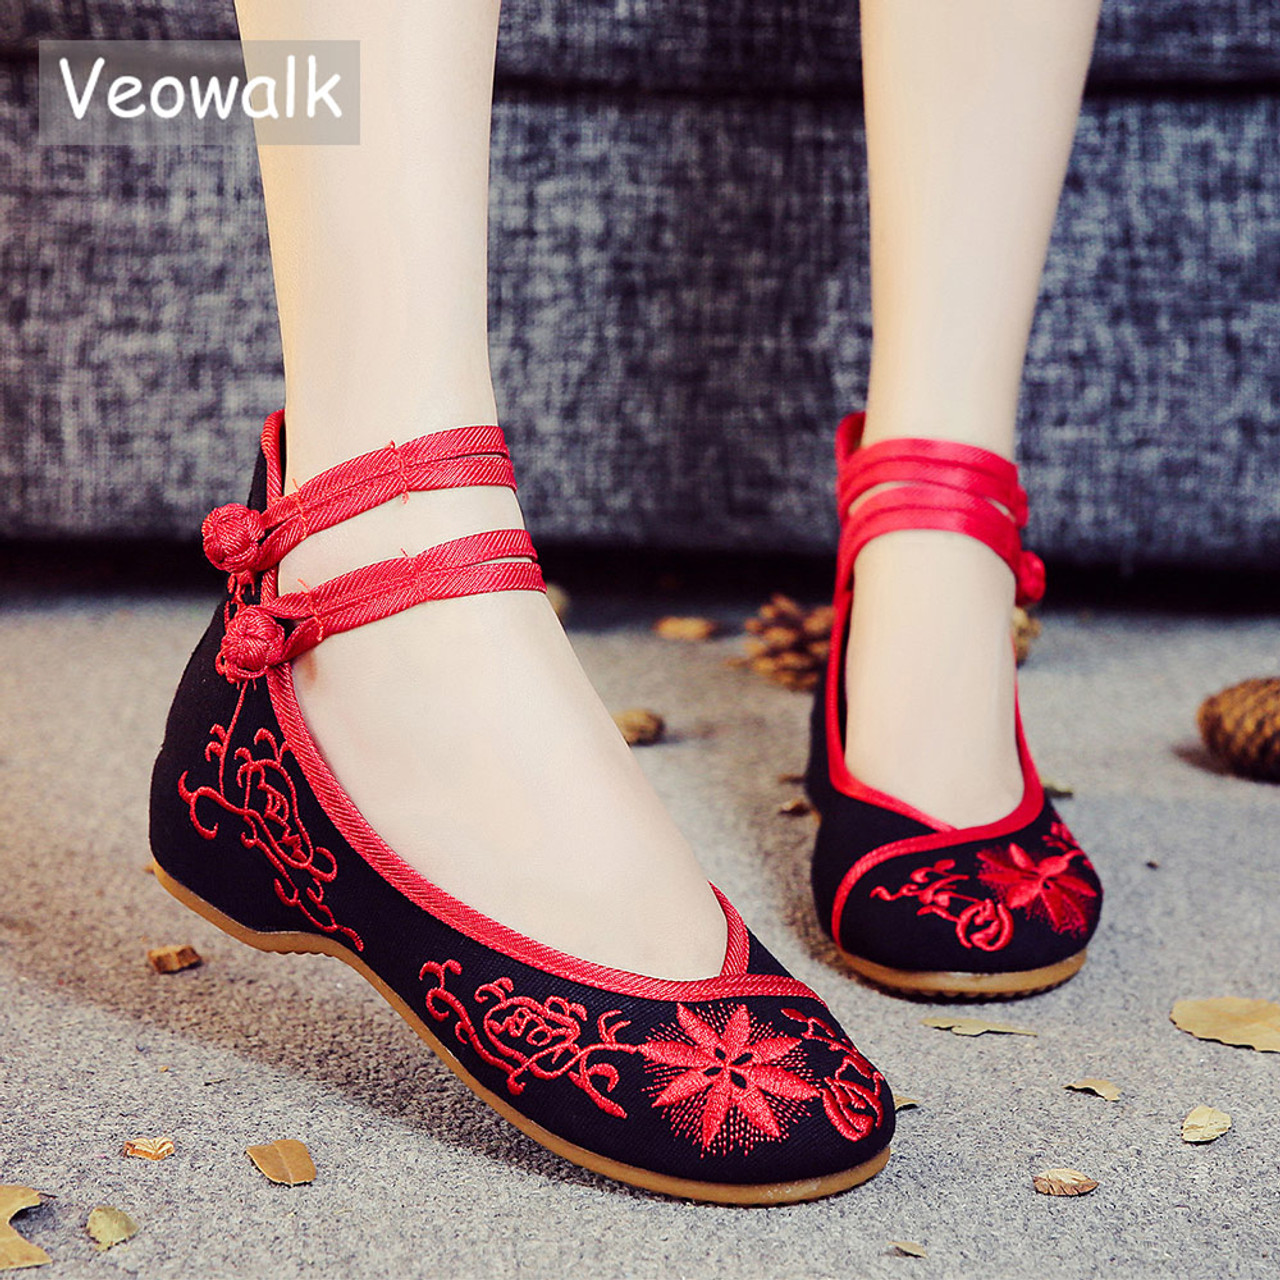 2179f605c505 Veowalk Sunflower Embroidered Women Canvas Ballet Flats Ankle Strap Ladies  Casual Cotton Chinese Embroidery Ballerina Shoes ...